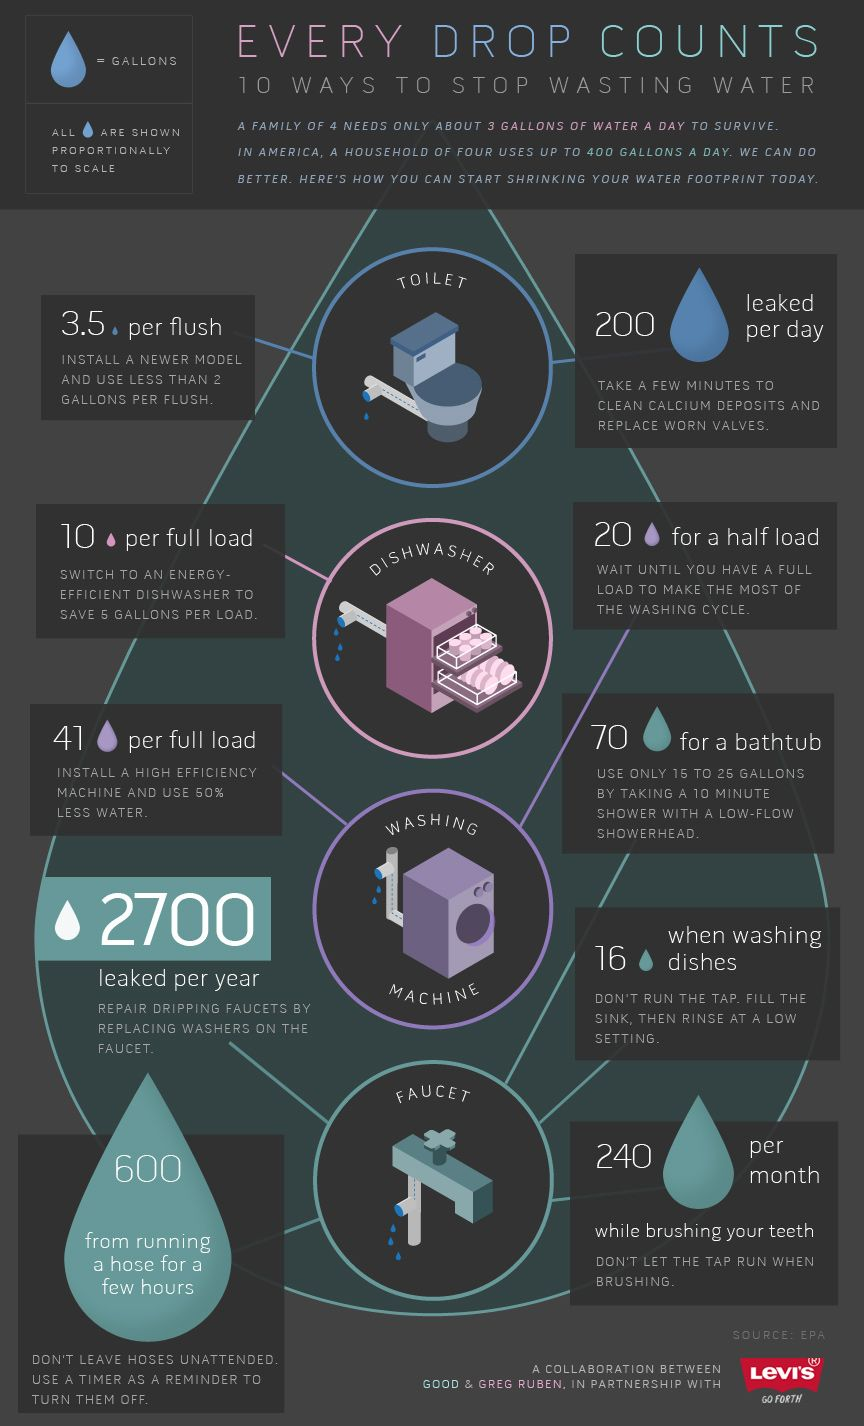 Every Drop Counts With Images Water Waste Ways To Save Water